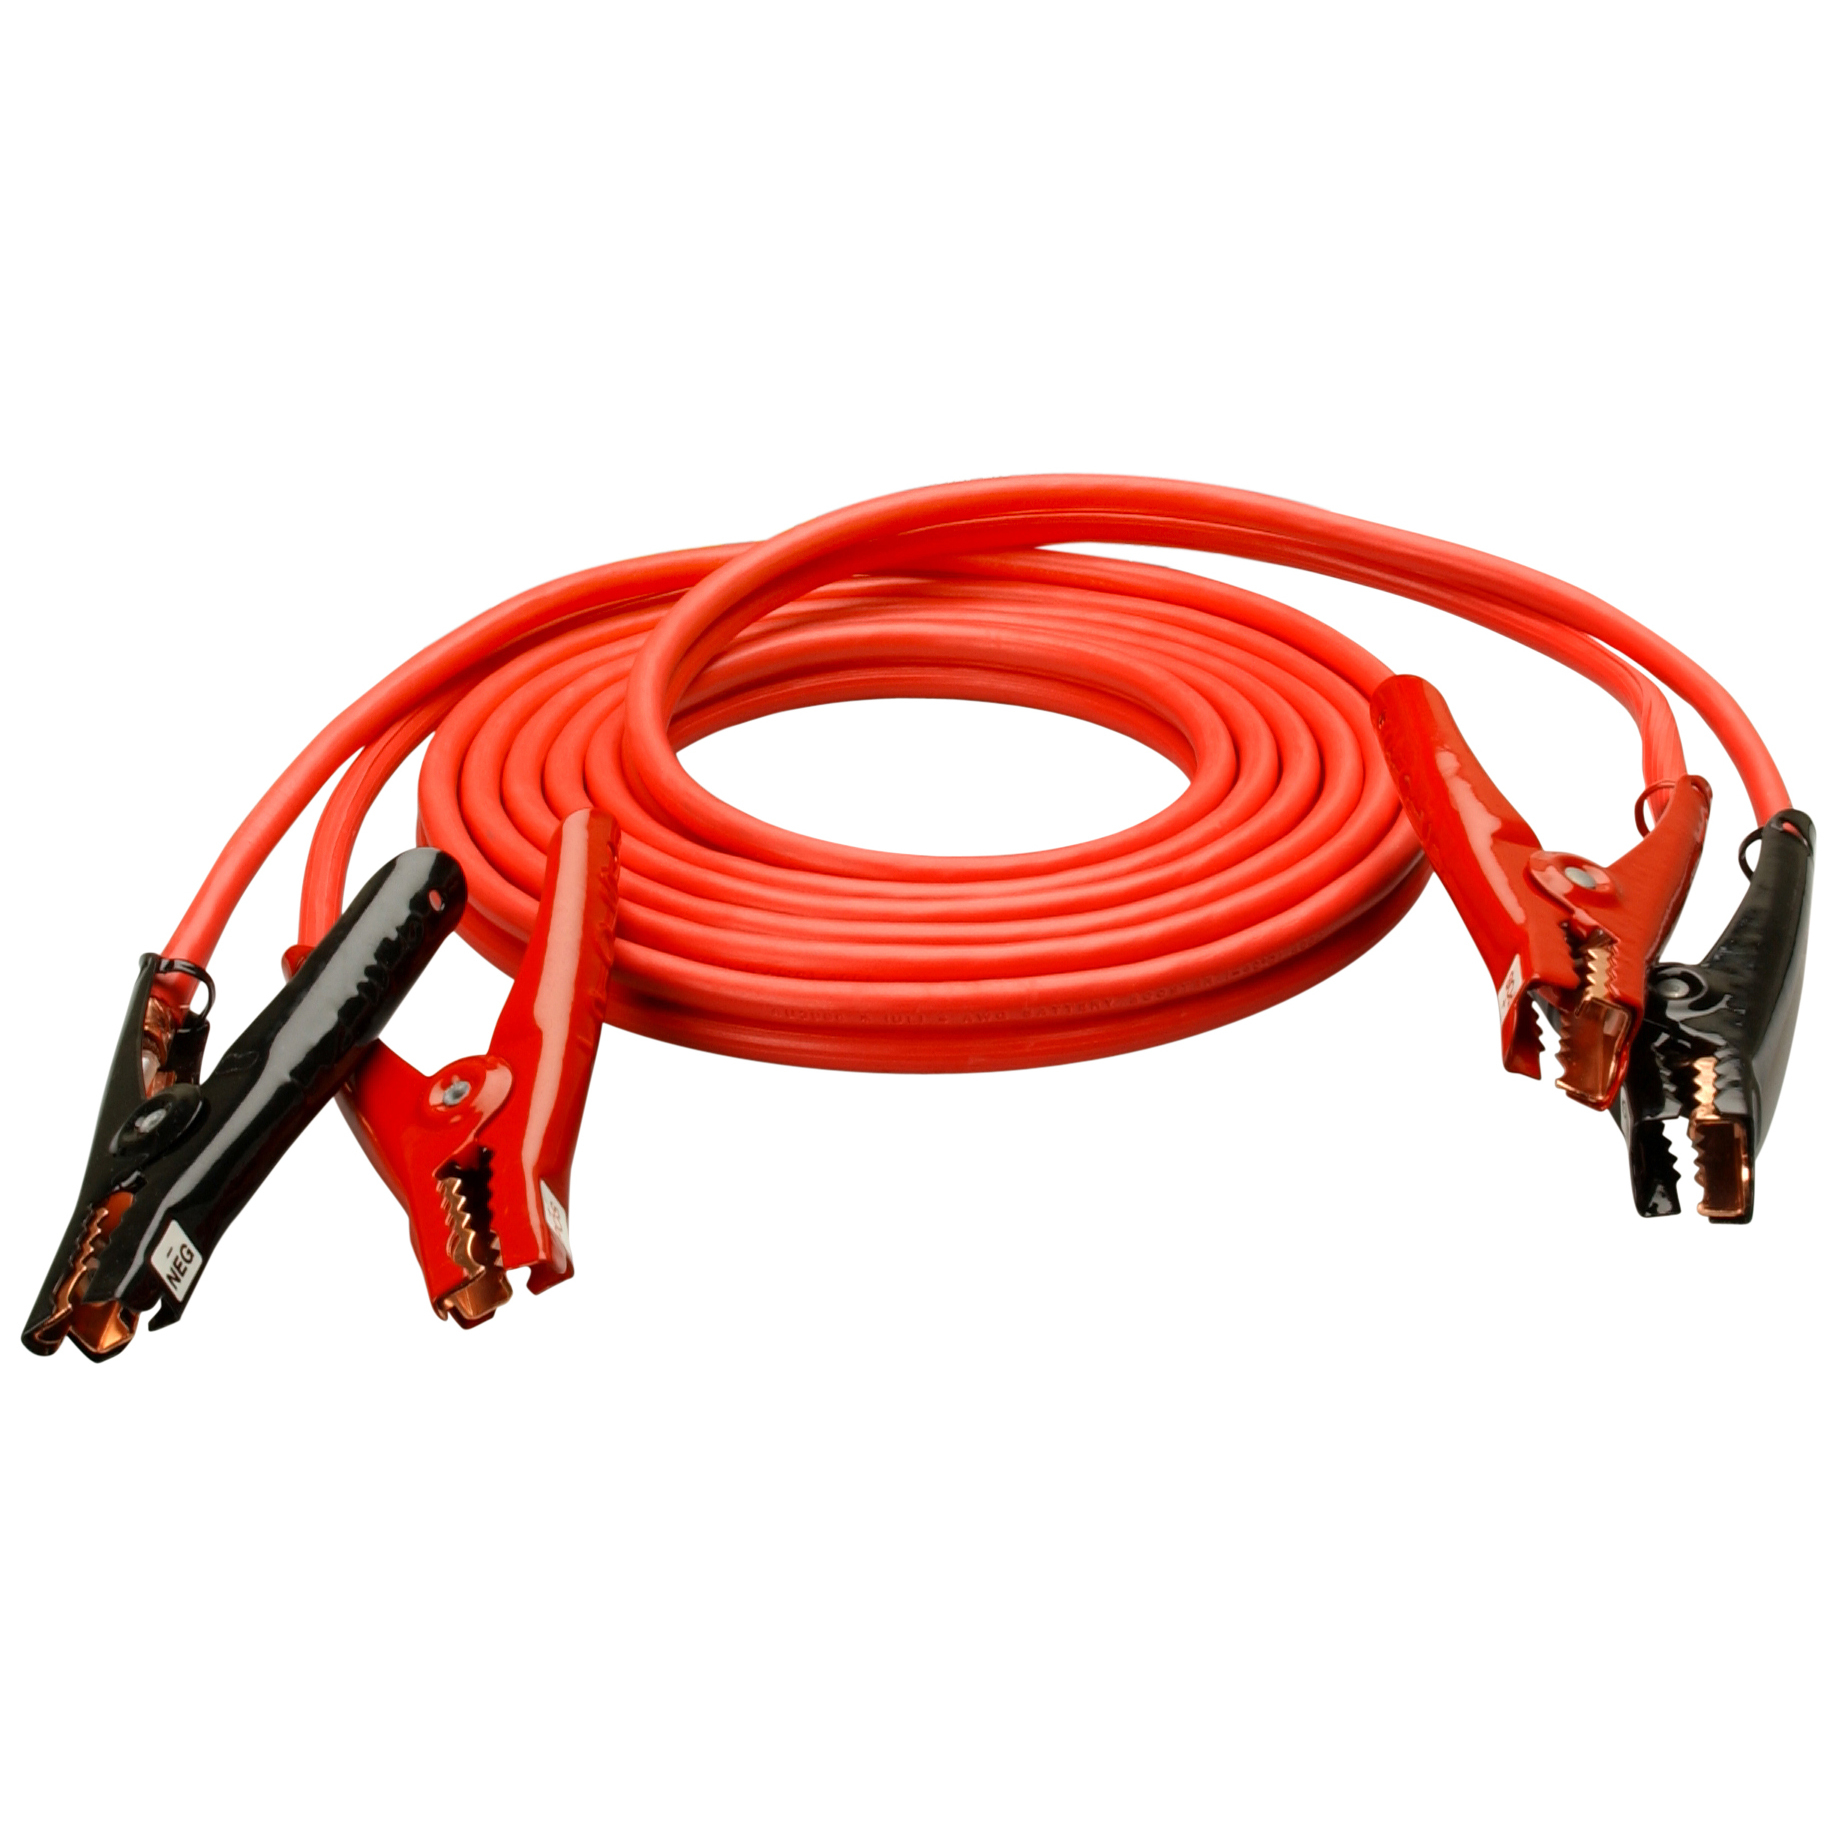 Coleman Cable 86600104 20' 4 Gauge Booster Cable With Polar-Glo Clamps